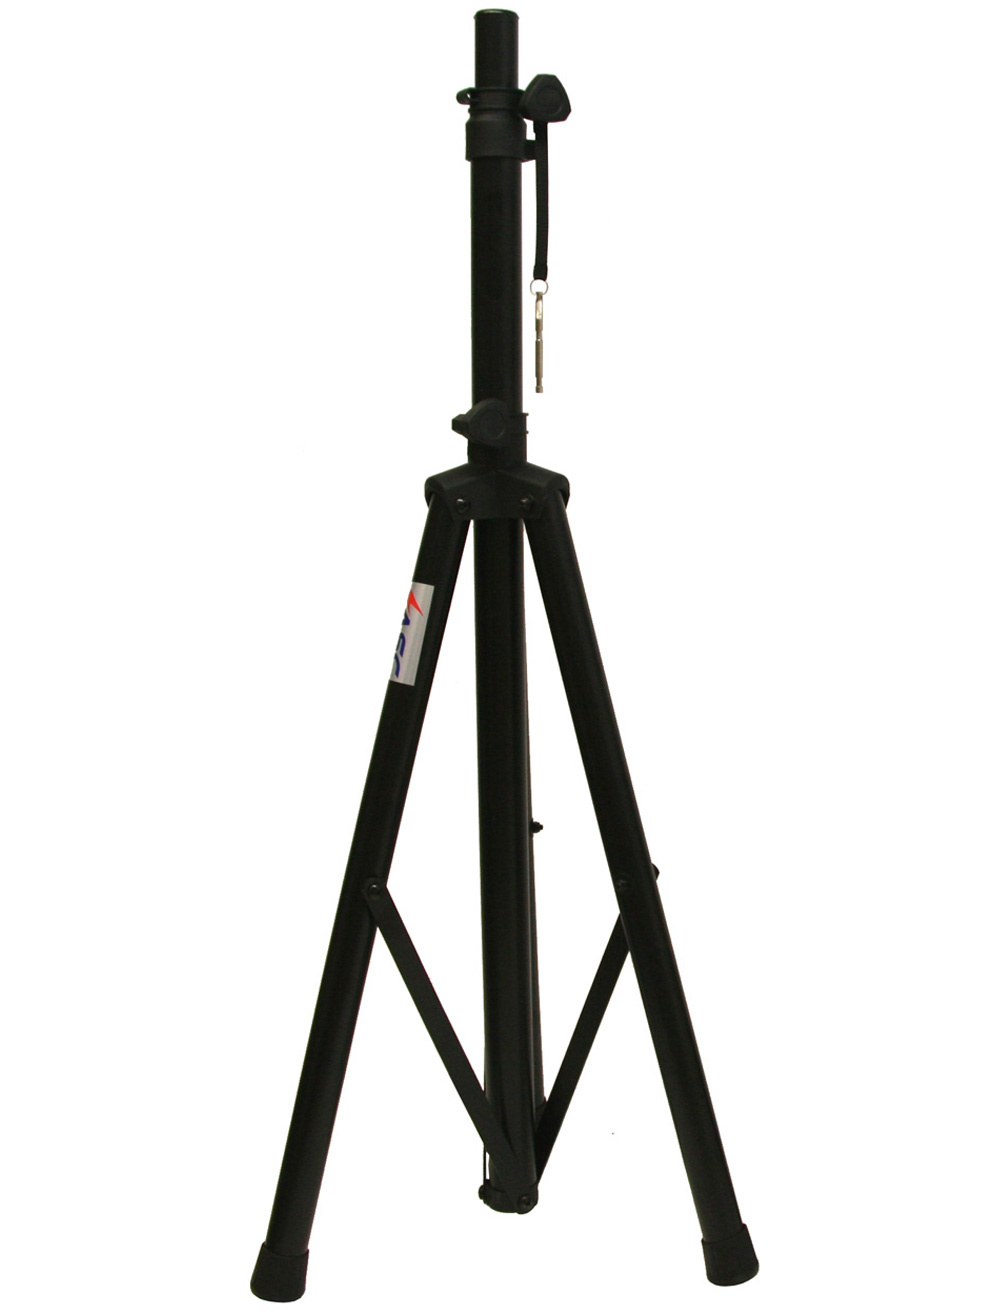 DJ Pro Audio PA Speaker or Lighting Adjustable 6 Foot Max Height Tripod Stand